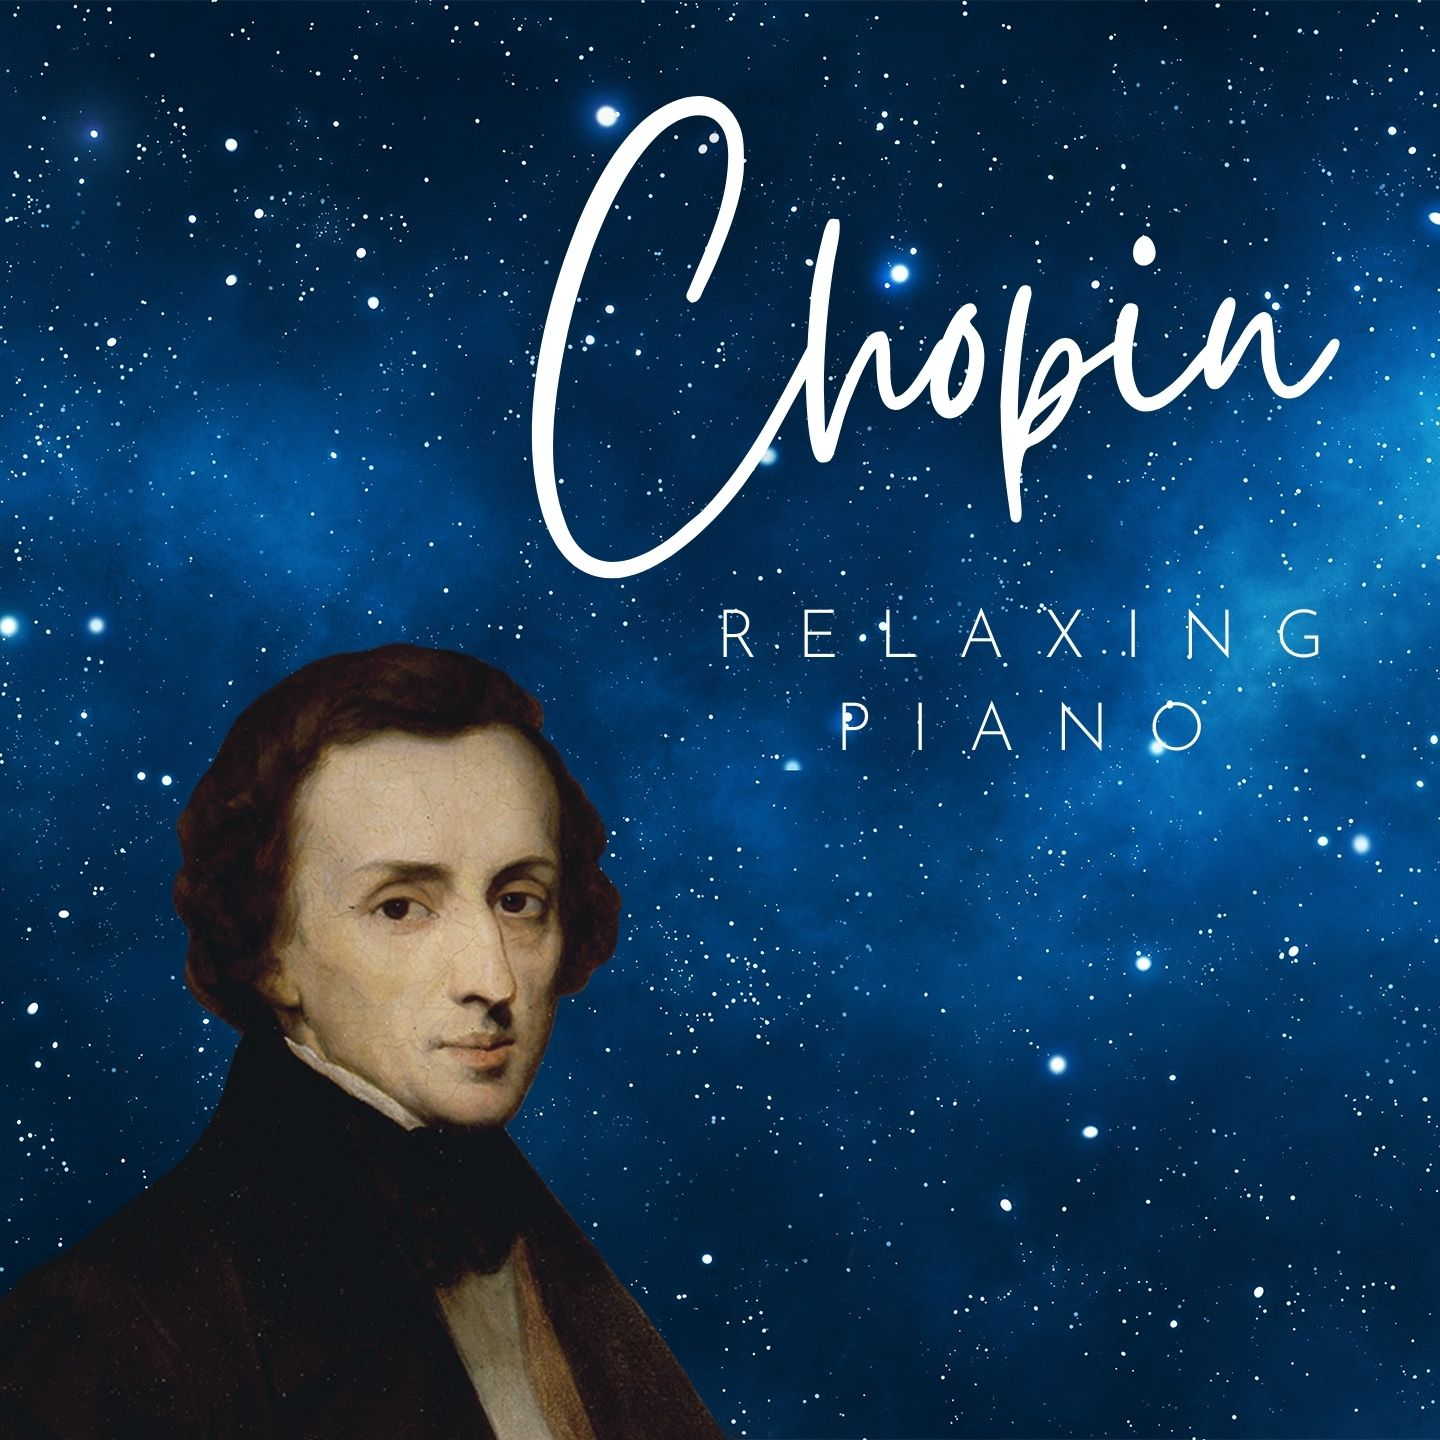 Chopin: Relaxing Piano